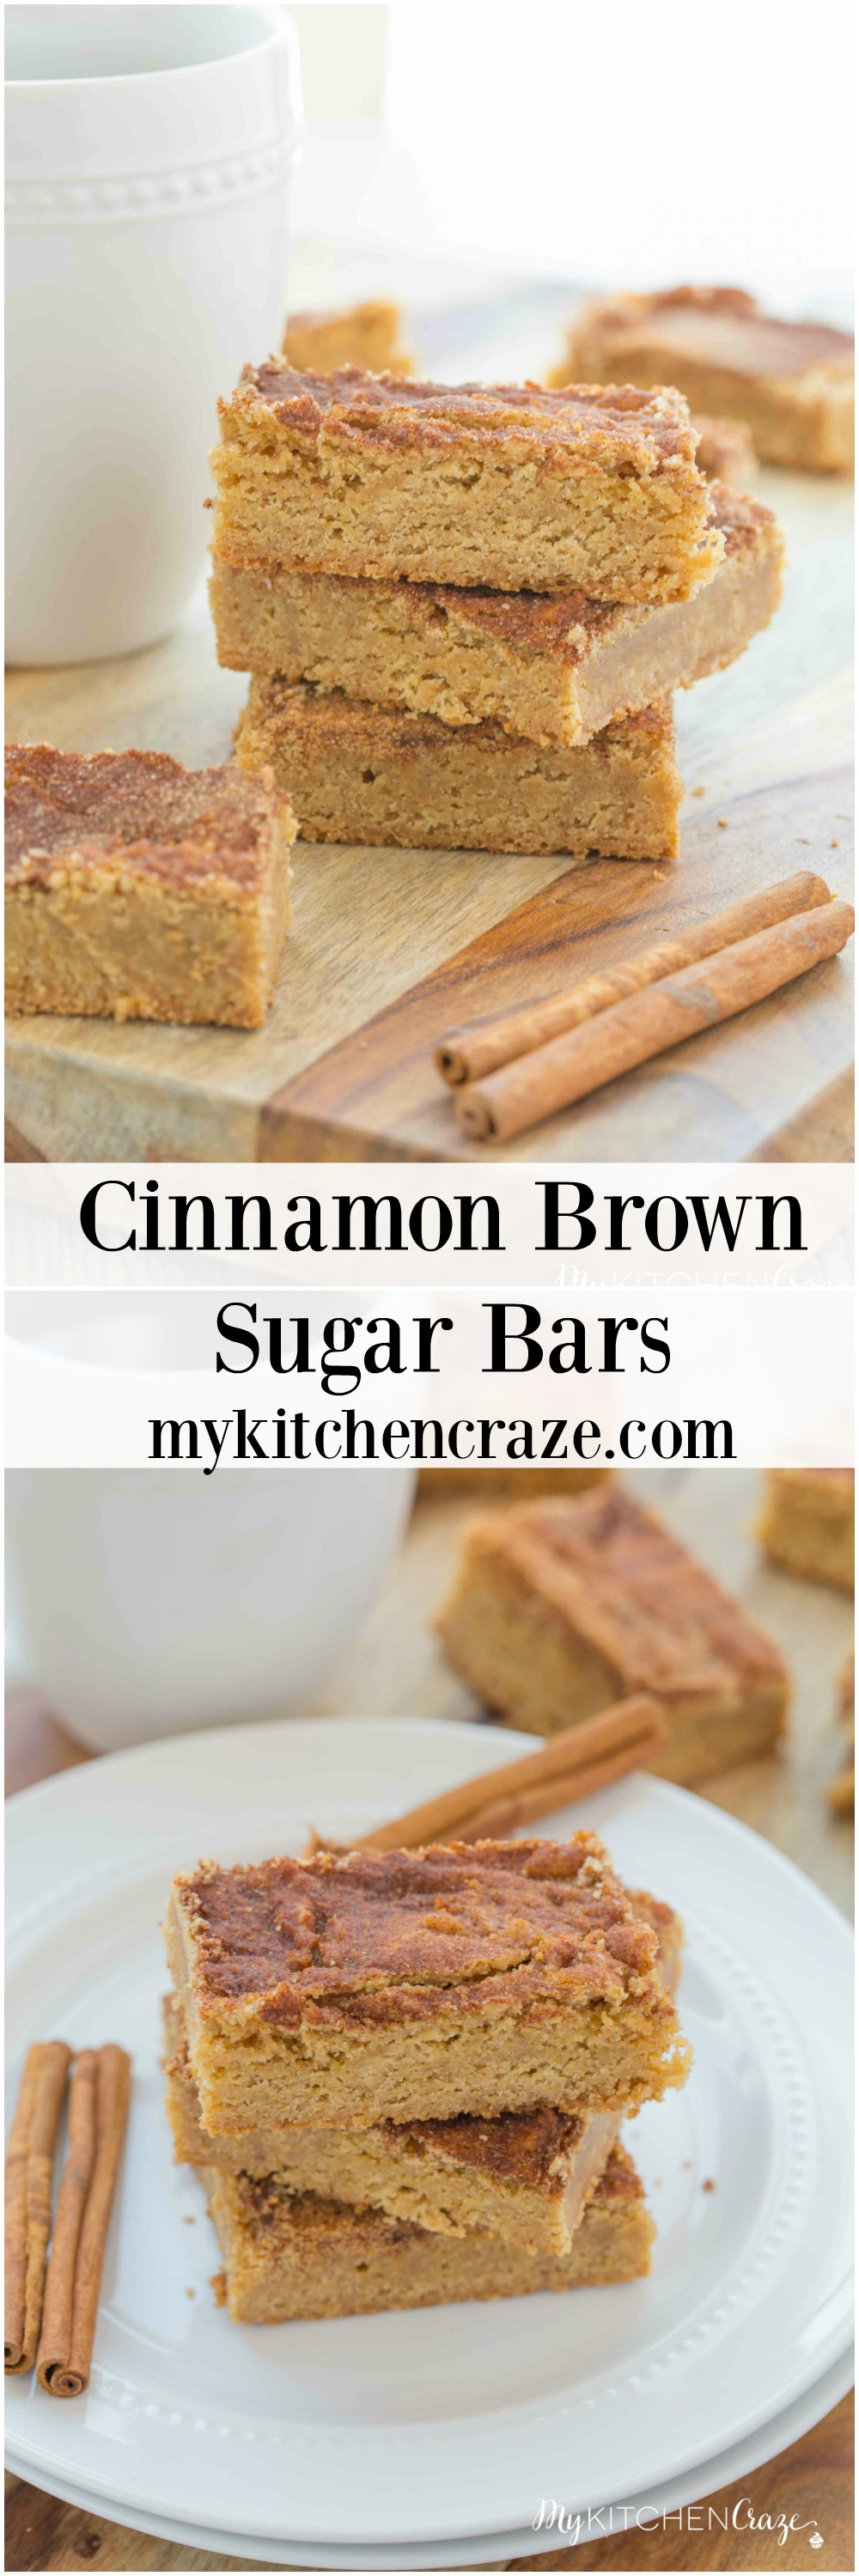 Cinnamon Brown Sugar Bars ~ mykitchencraze.com ~ Cinnamon Brown Sugar Bars are a moist delicious bar, topped with a cinnamon sugar topping. Add a dollop of vanilla ice cream or make a cup of coffee and you'll be in heaven!